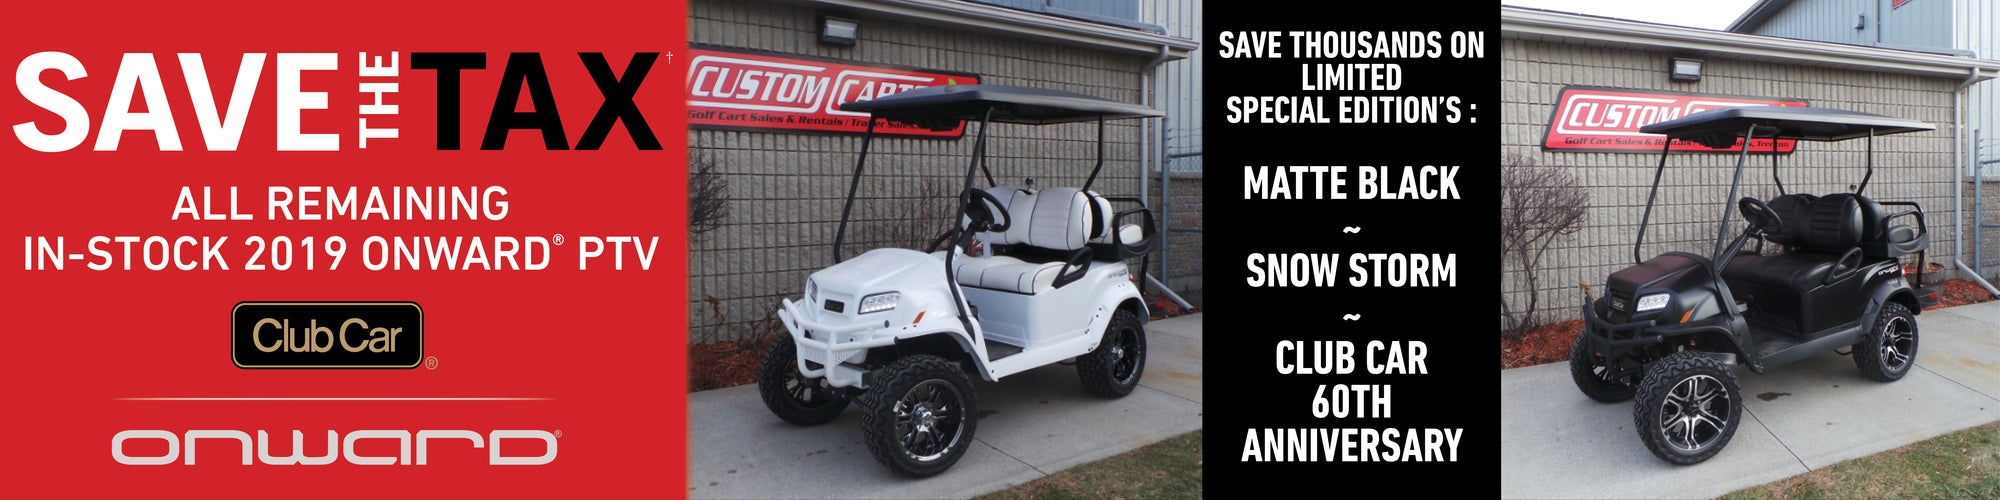 Customcarts.ca - Golf Carts and Golf Car Parts Superstore ... on skid steer tires, industrial tires, motorcycle tires, 18 x 8.50 x 8 tires, utv tires, 18x8.5 tires, atv tires, sahara classic tires, trailer tires, 23x10.5-12 tires, 20x10-10 tires, carlisle tires, tractor tires, ditcher tires, sweeper tires, v roll paddle tires, bicycle tires, mud traction tires, truck tires,